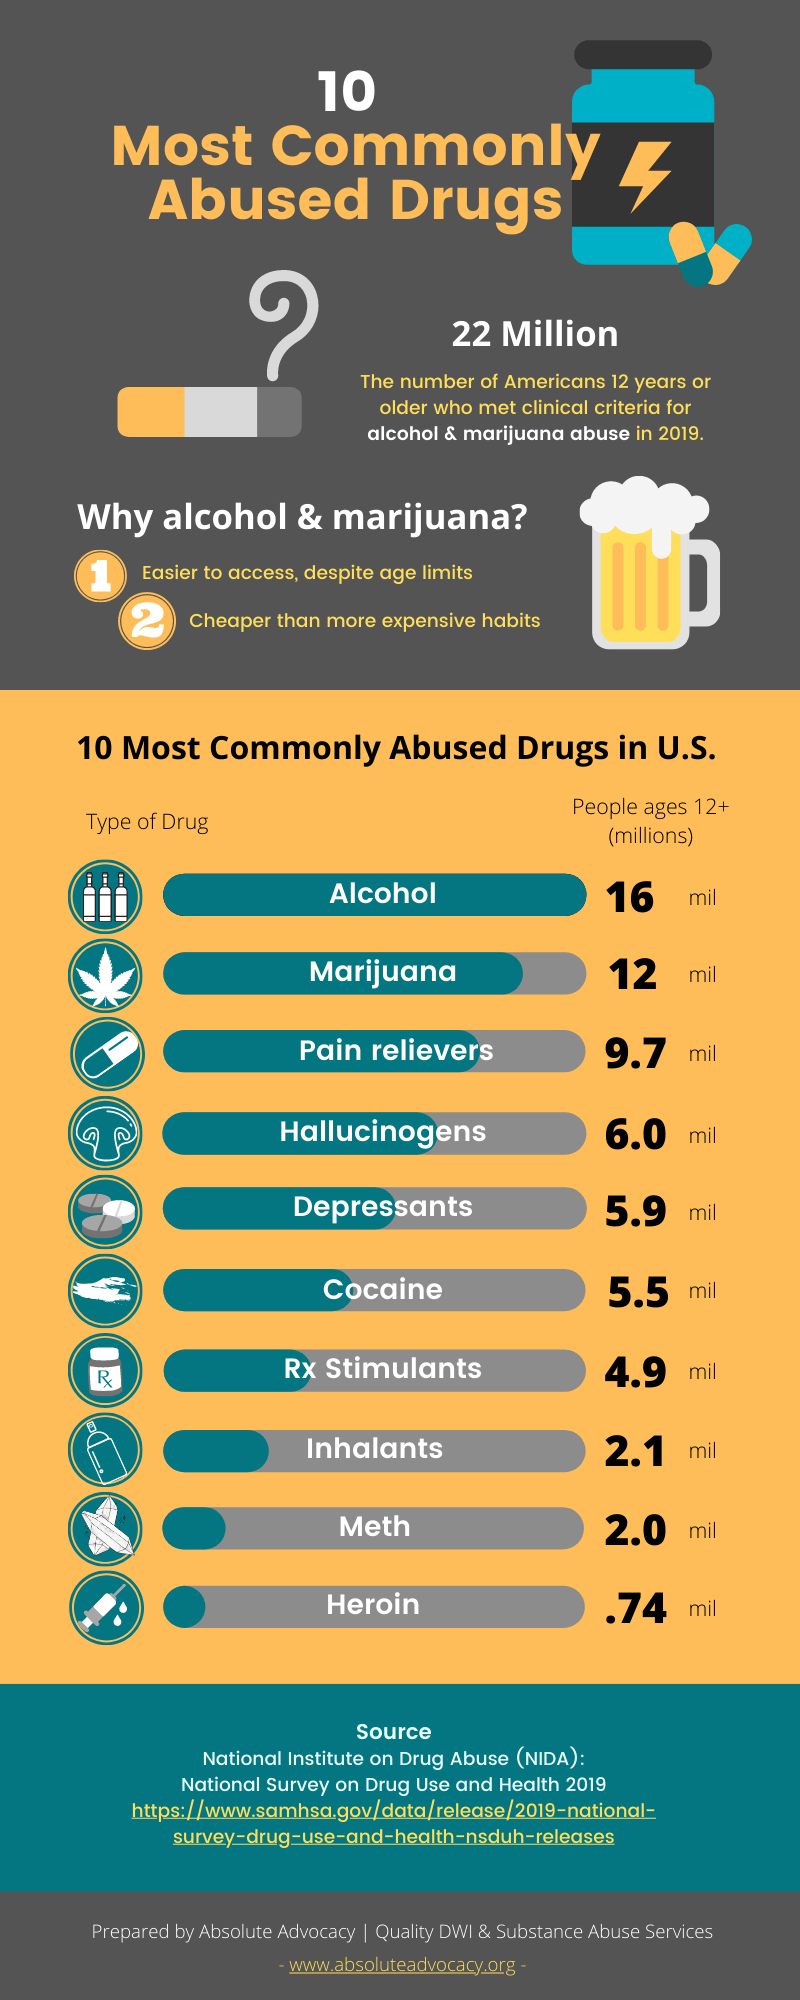 10 Most Commonly Abused Drugs in US